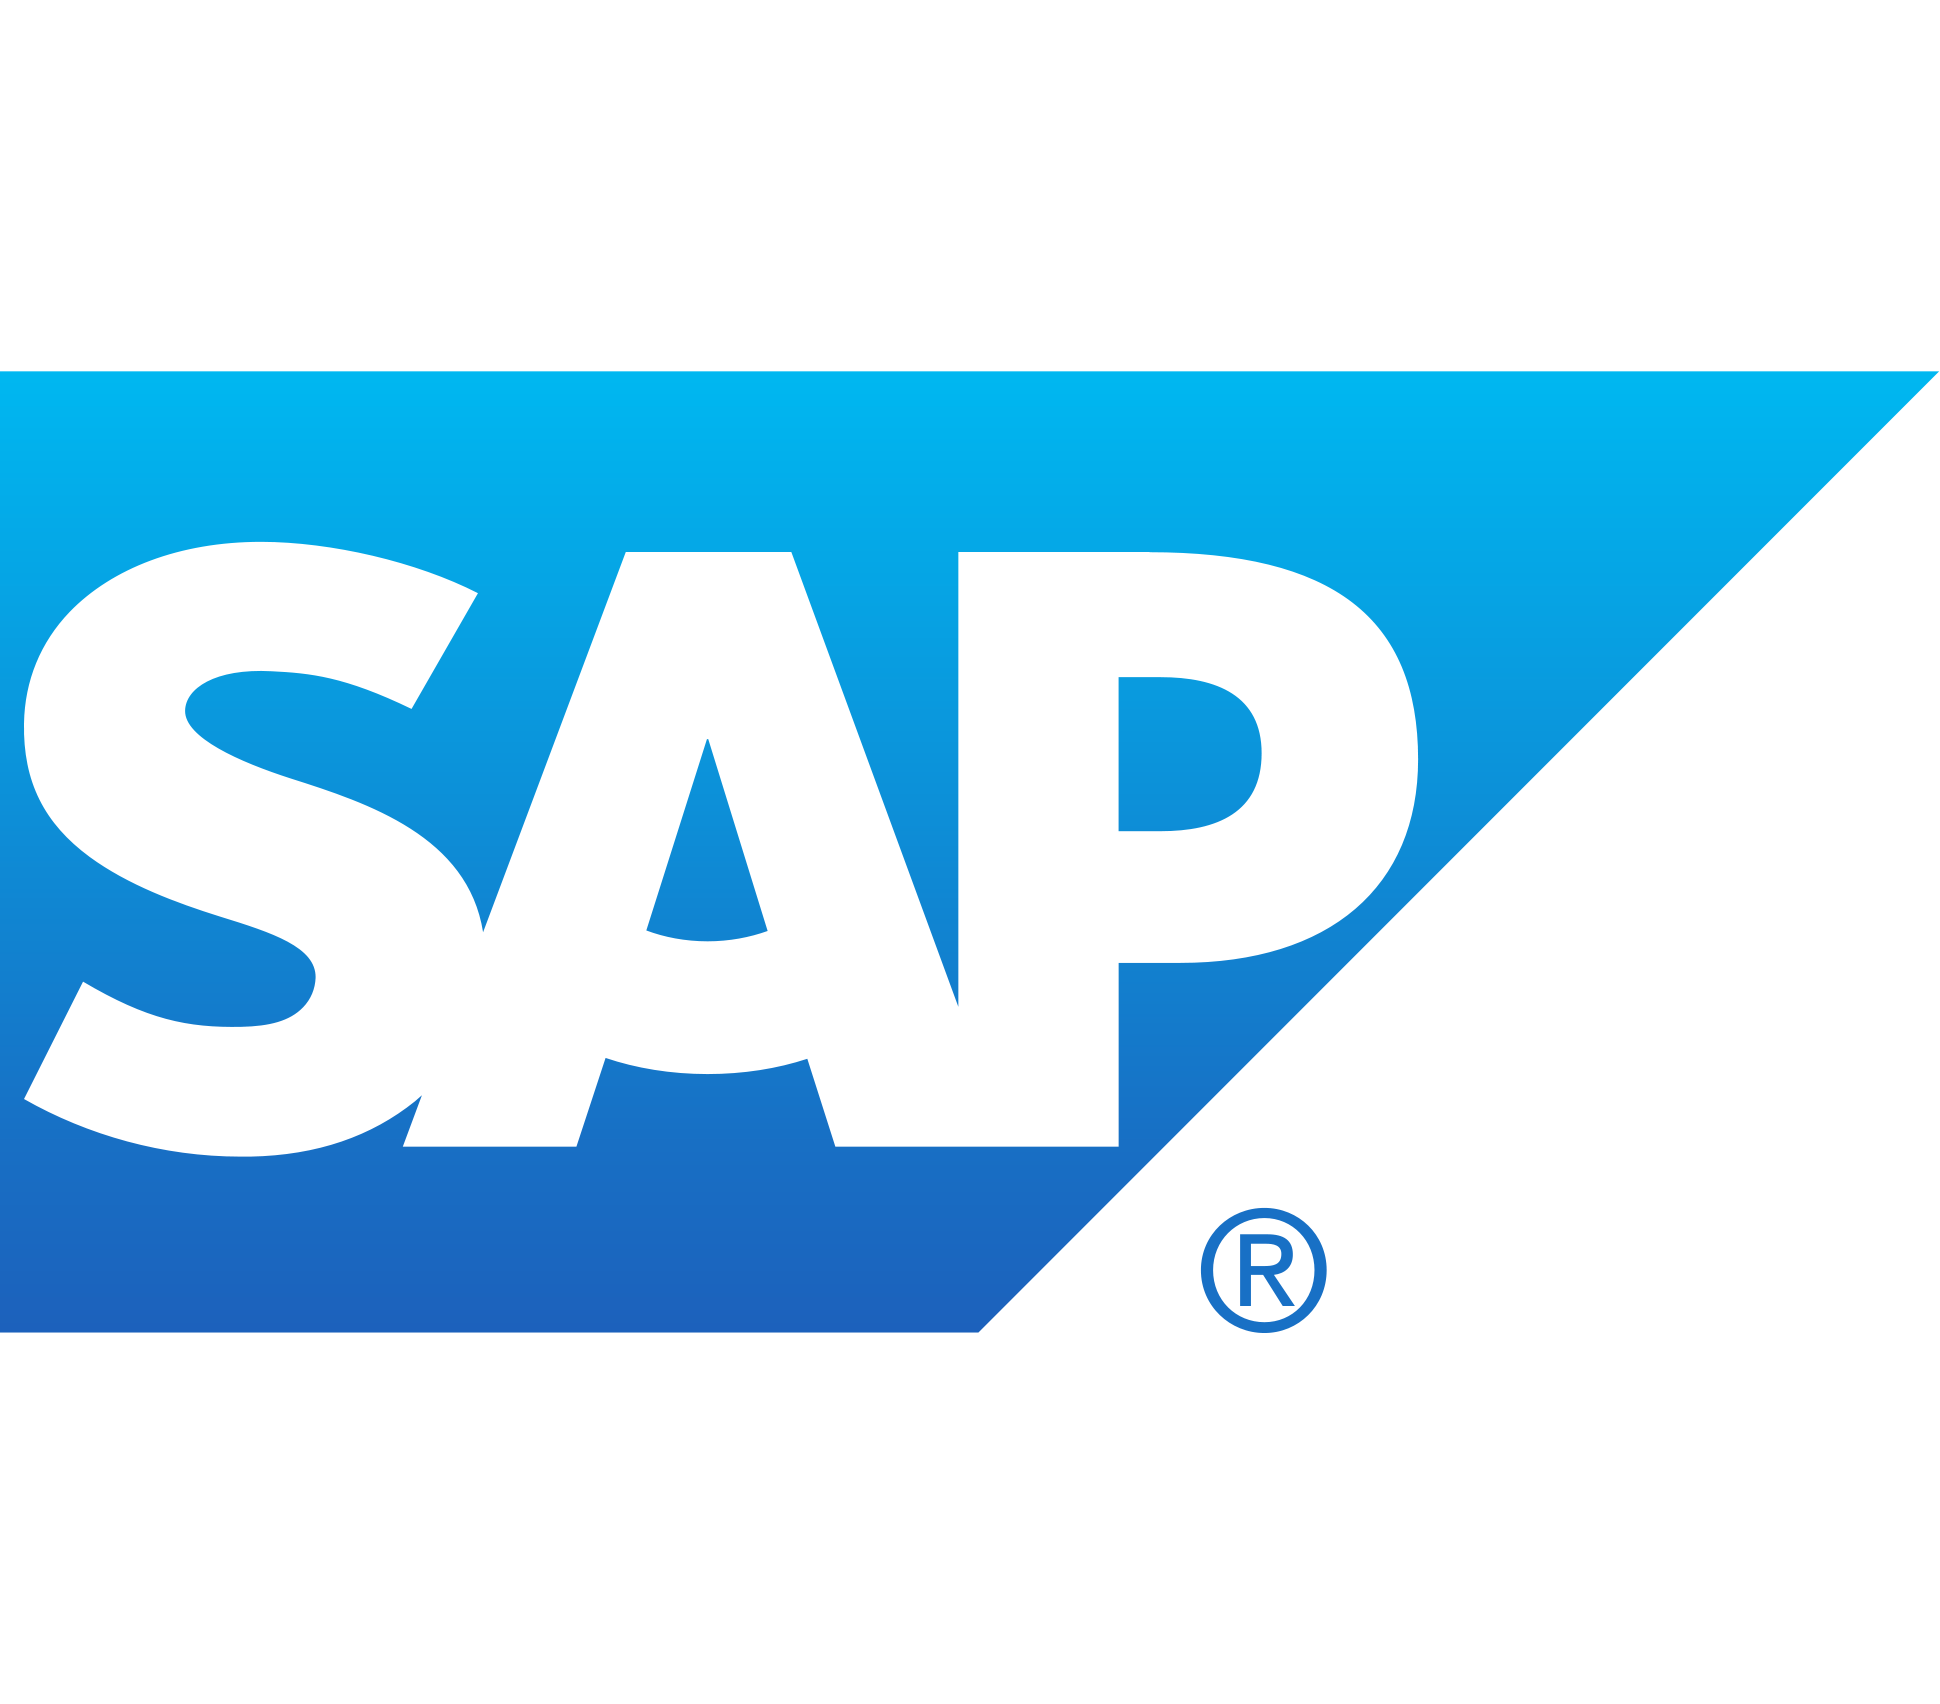 SAP iXp Intern - UX Design for SAP Digital Supply Chain Technologies Job